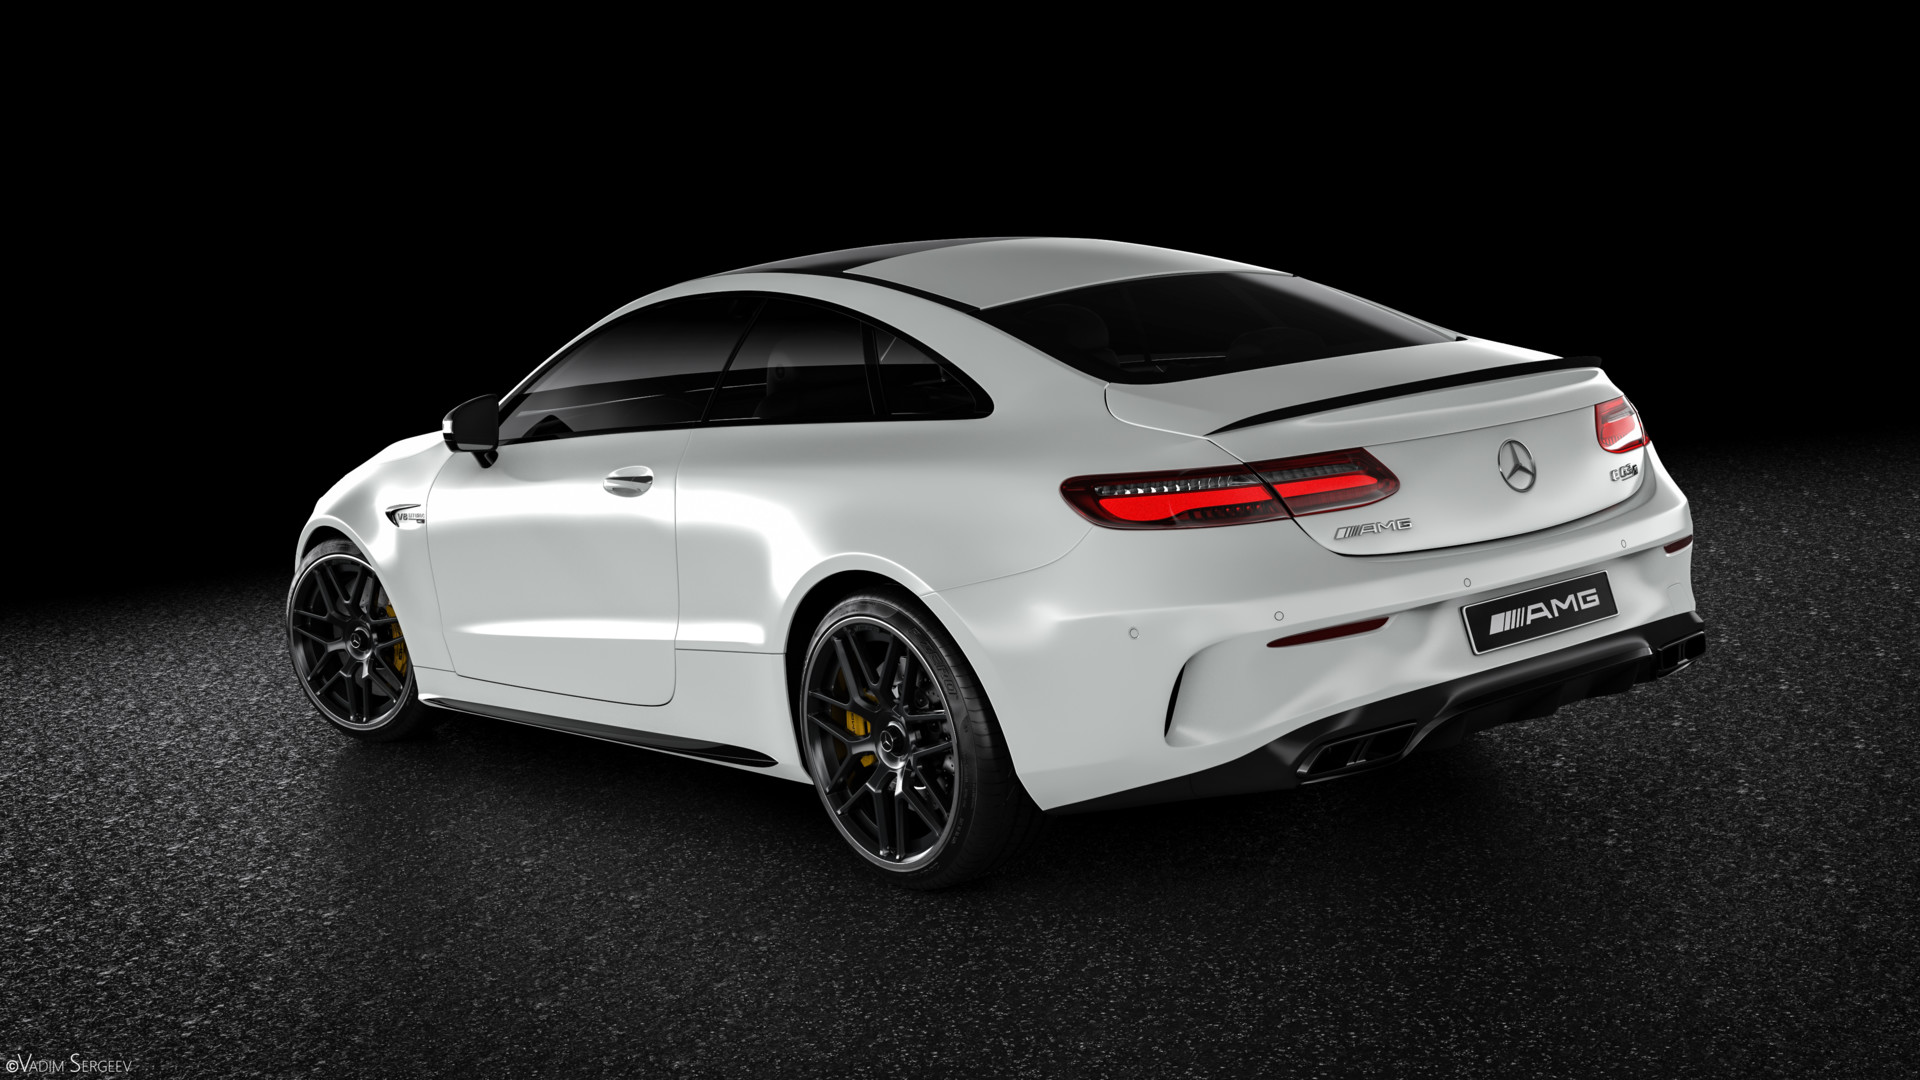 Incredible Mercedes Amg E63 S Coupe Renderings Show Why It Needs To Happen